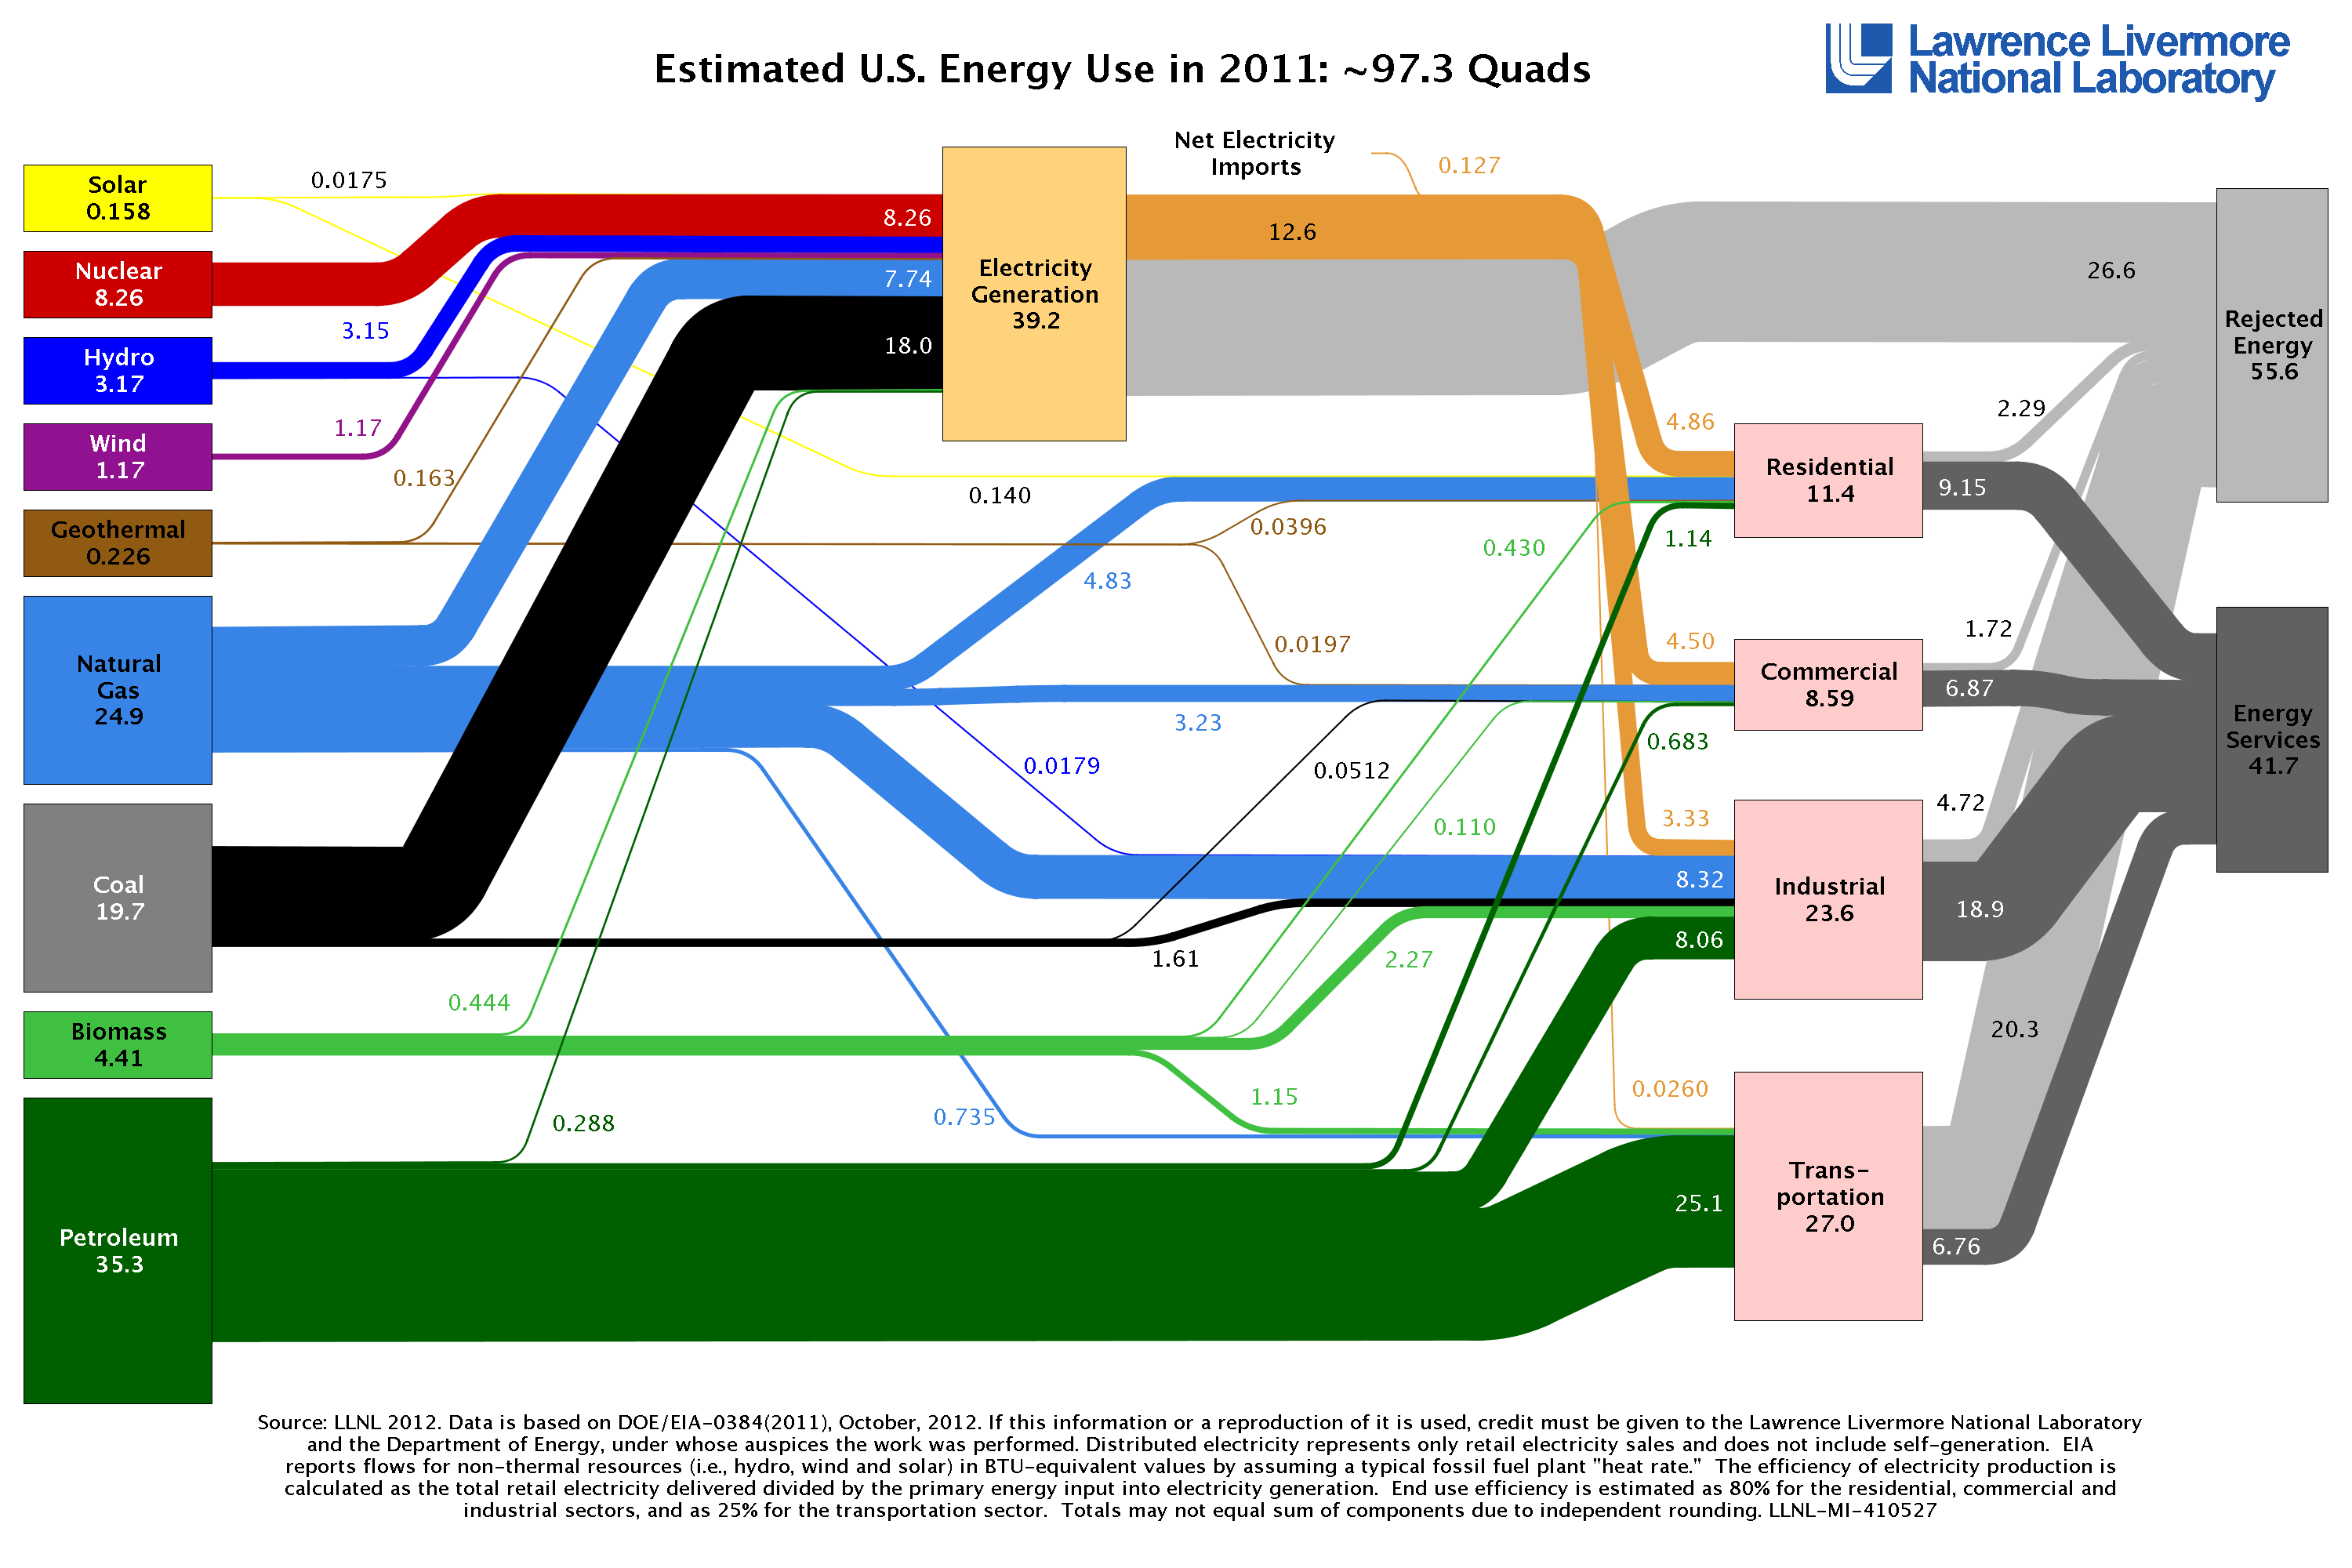 Sankey Diagrams To Visualize Energy Flows